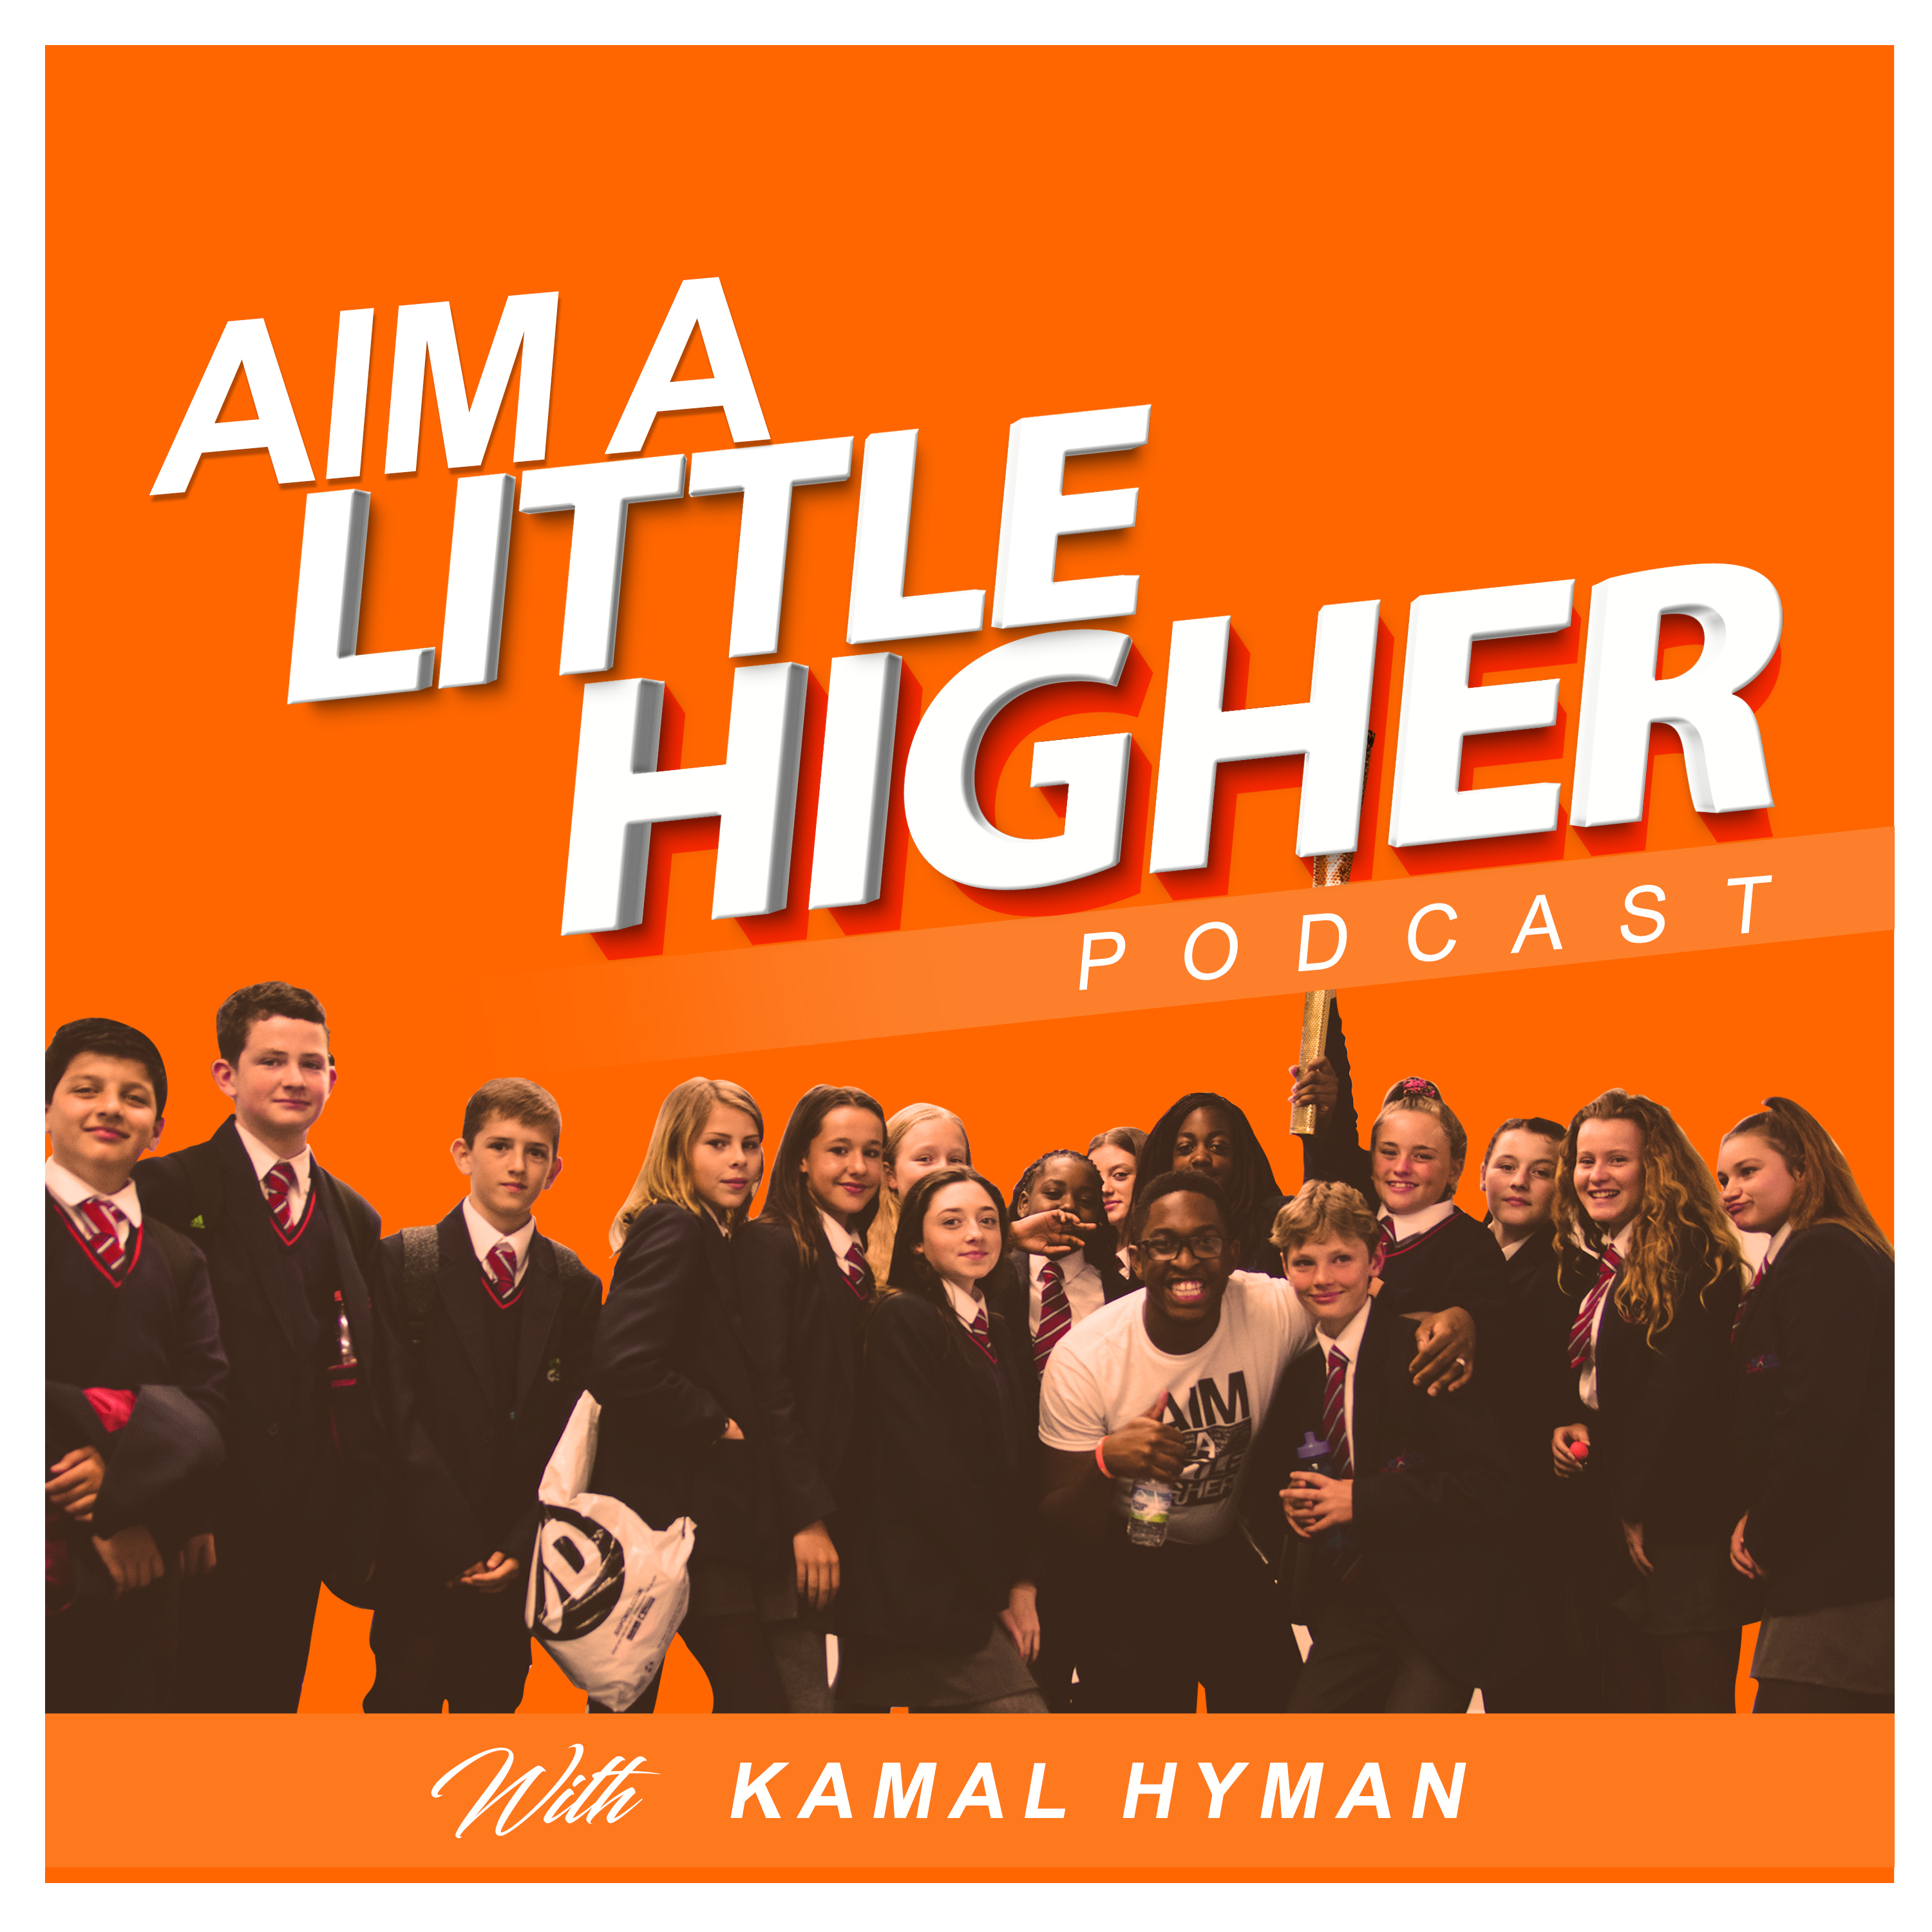 Aim A Little Higher Podcast